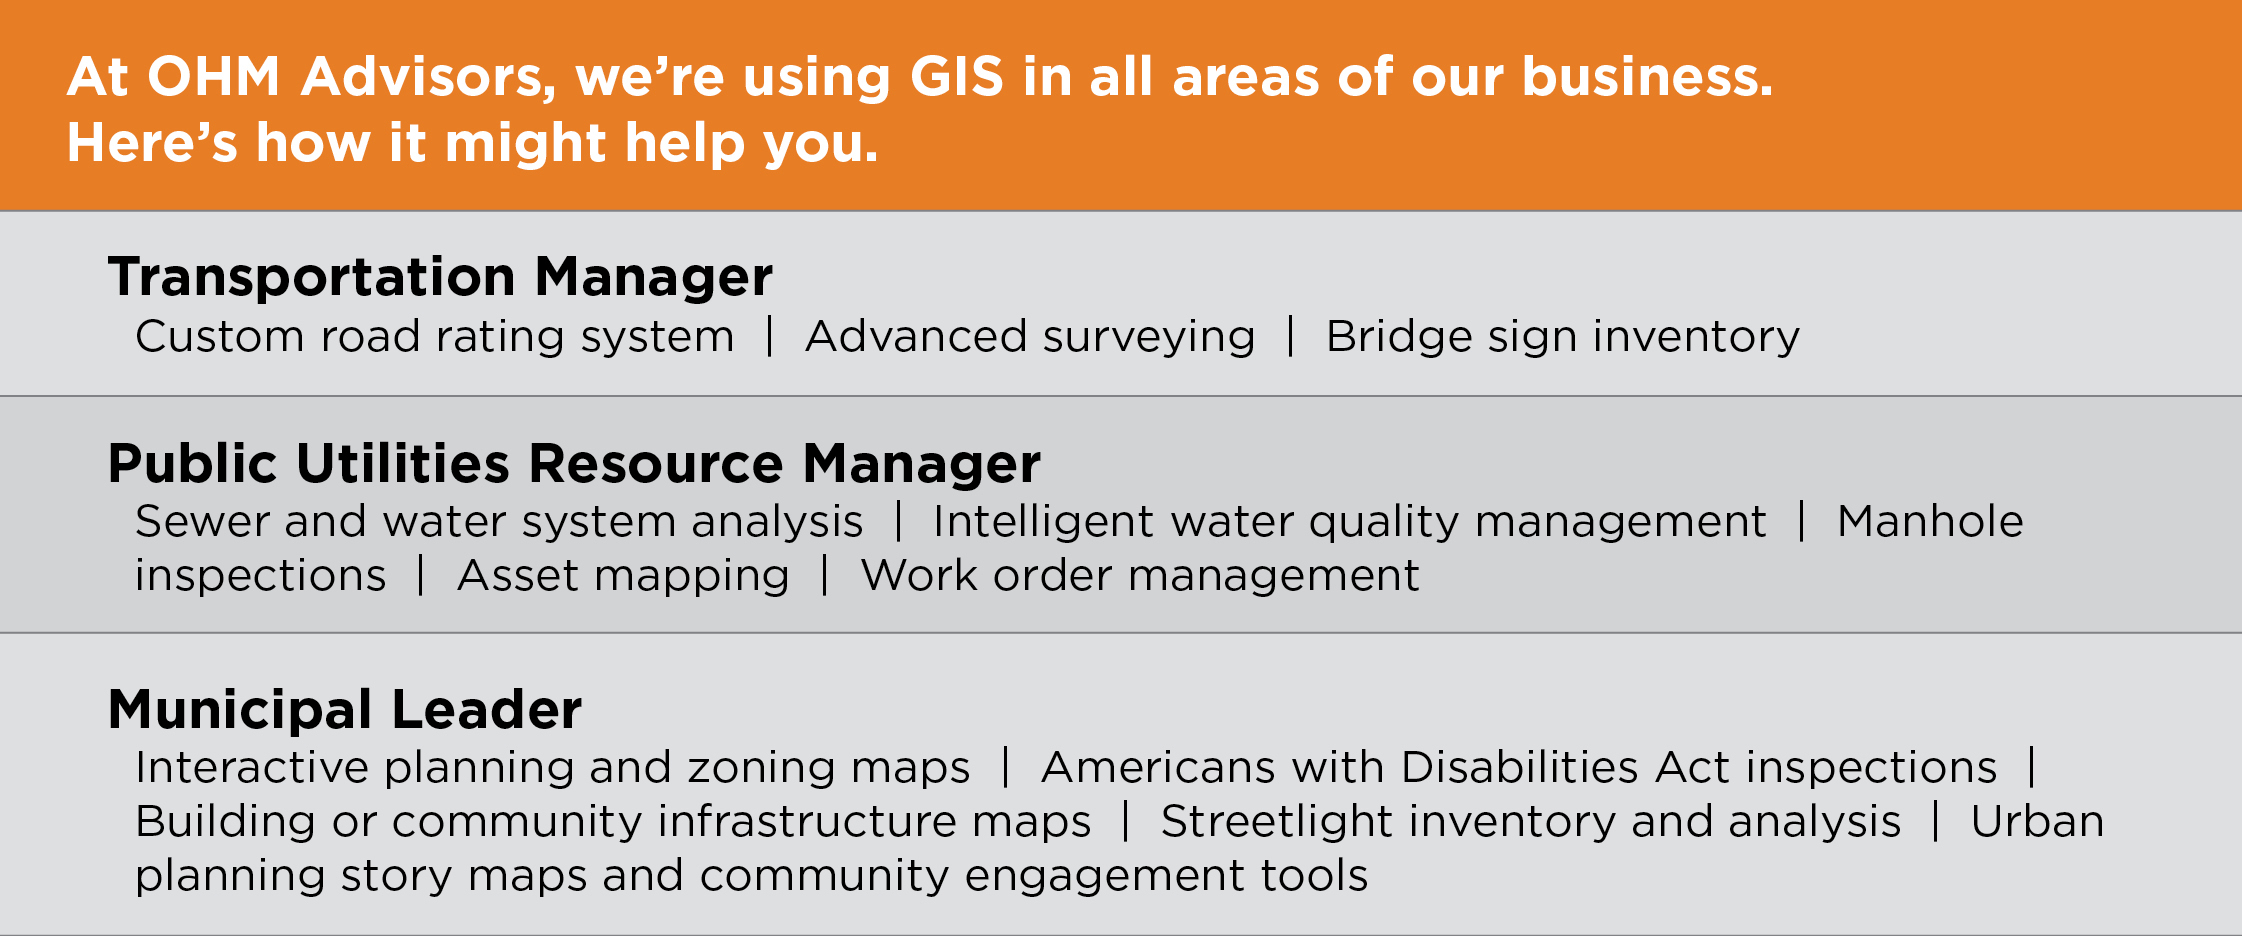 Infographic about the many applications for GIS for professionals in multiple industries.